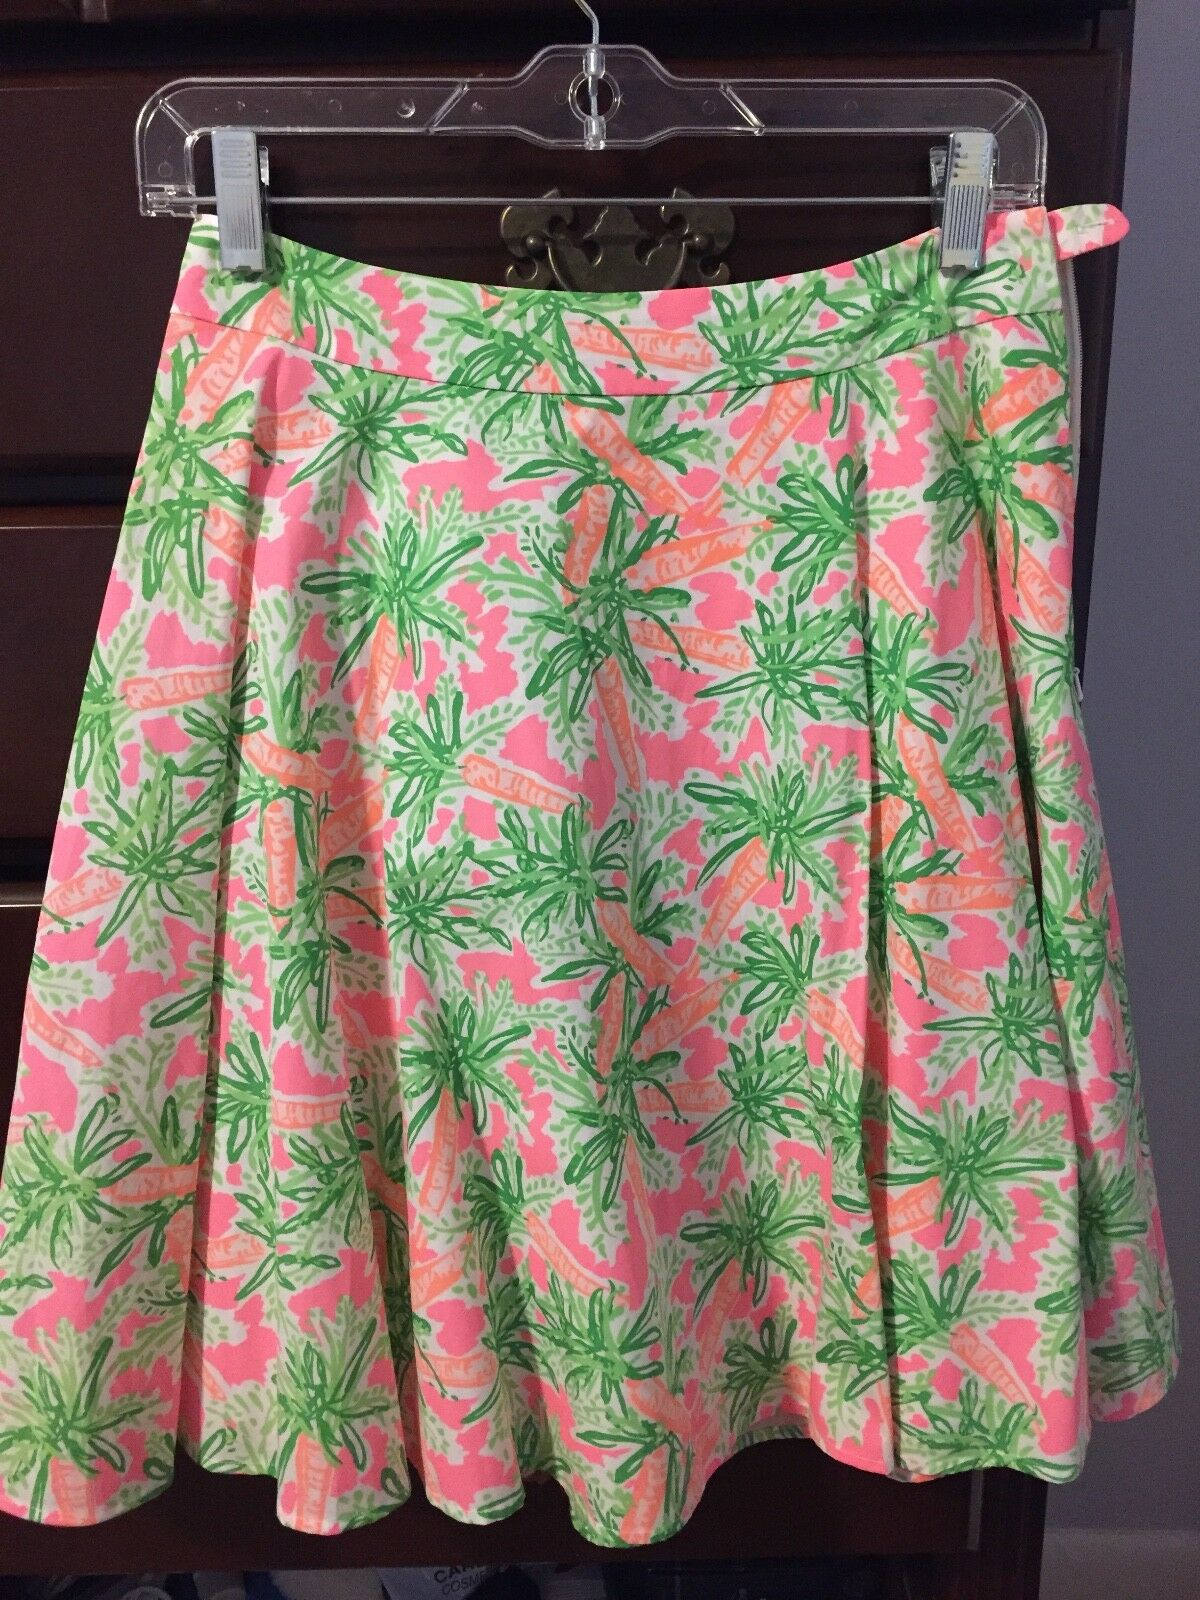 Lilly Pulitzer Skirt Size 6, pink, green, worn once, like new